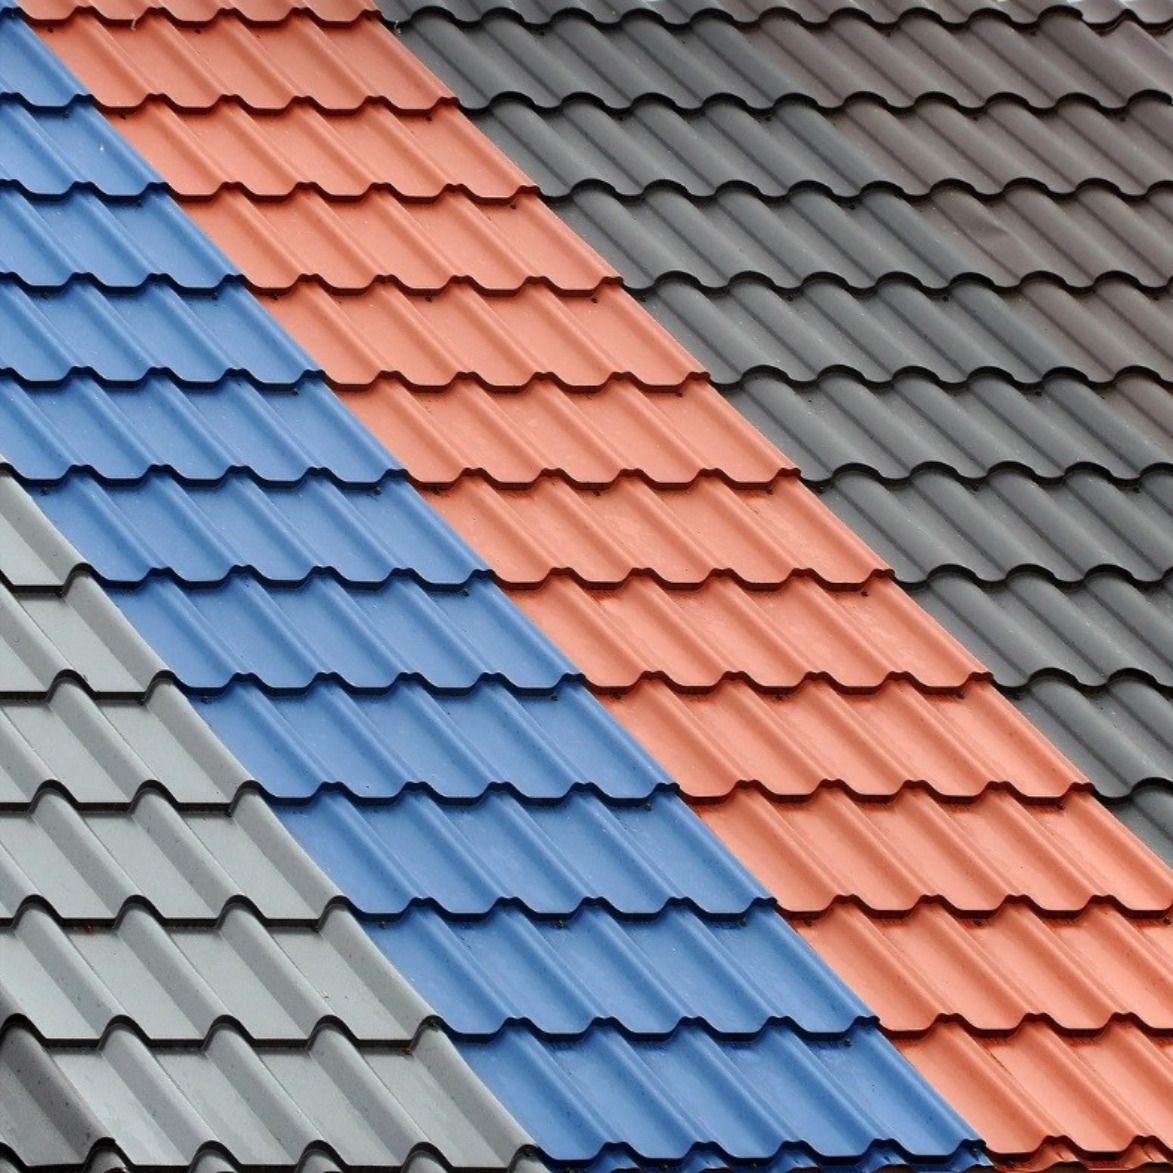 Why Alu Zinc Used For Roofing Sheets Oriental Peb In 2020 Roofing Sheets Zinc Roof Roofing